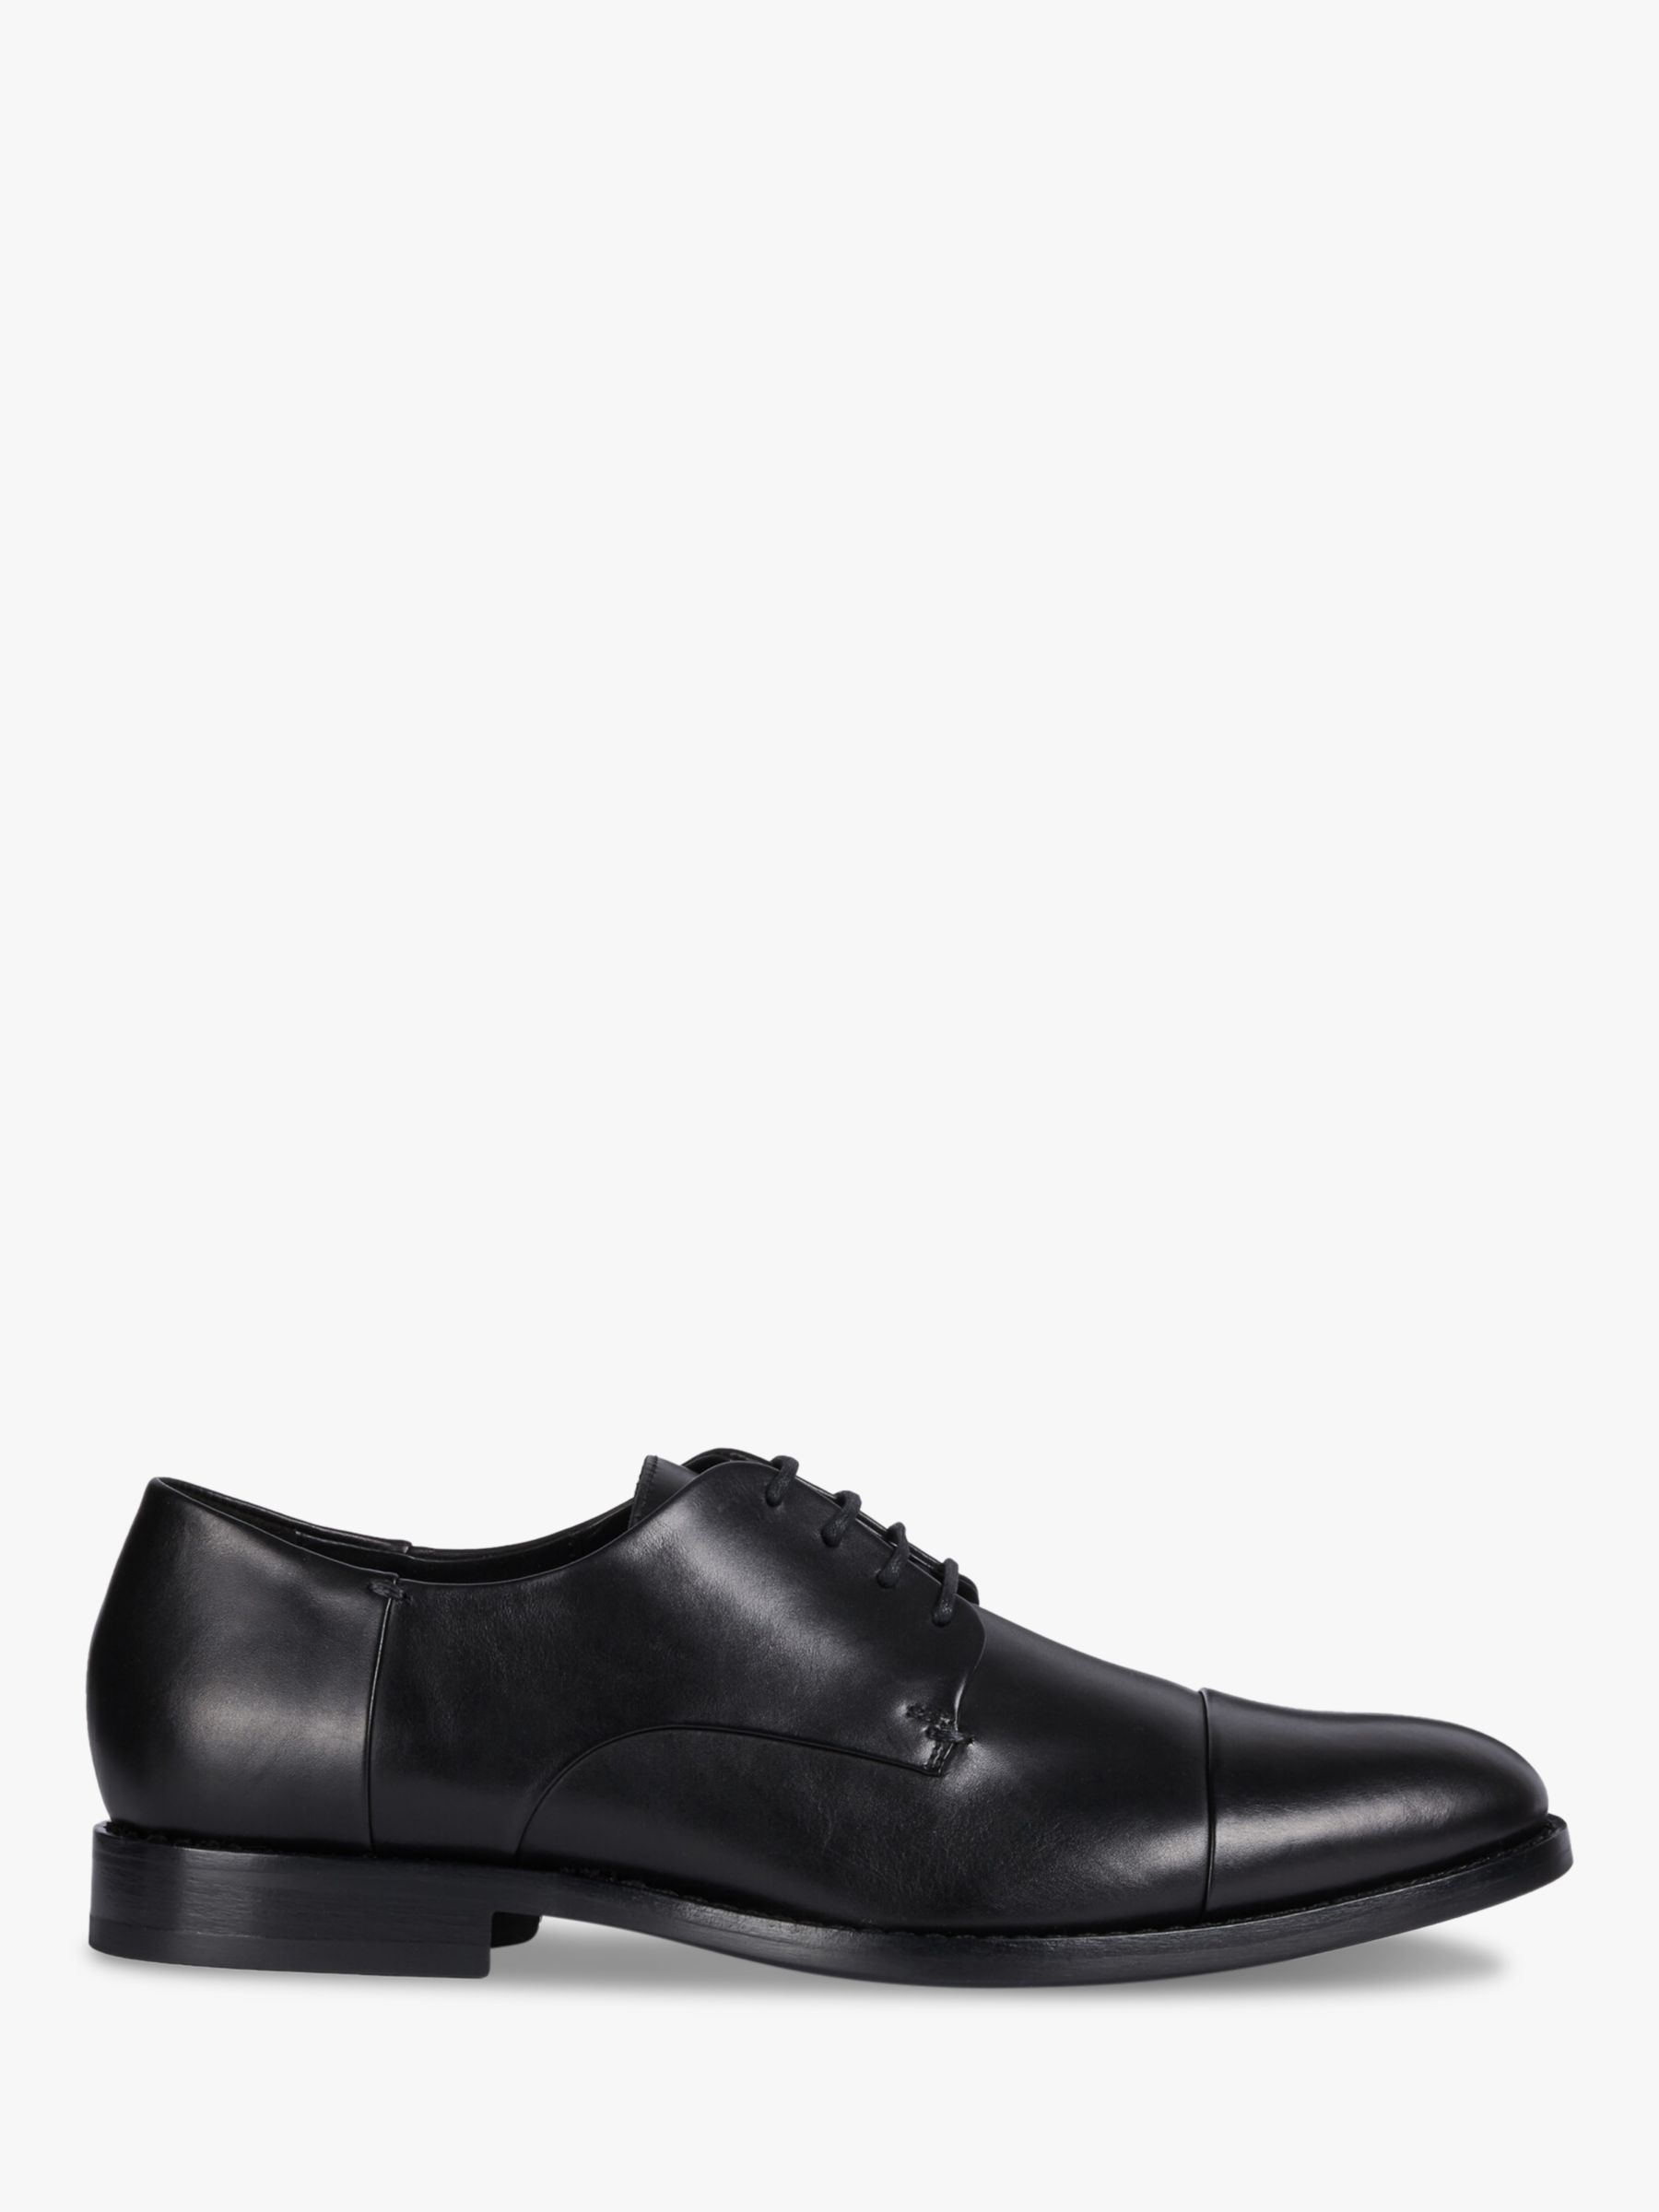 Geox Geox Hampstead Leather Oxford Shoes